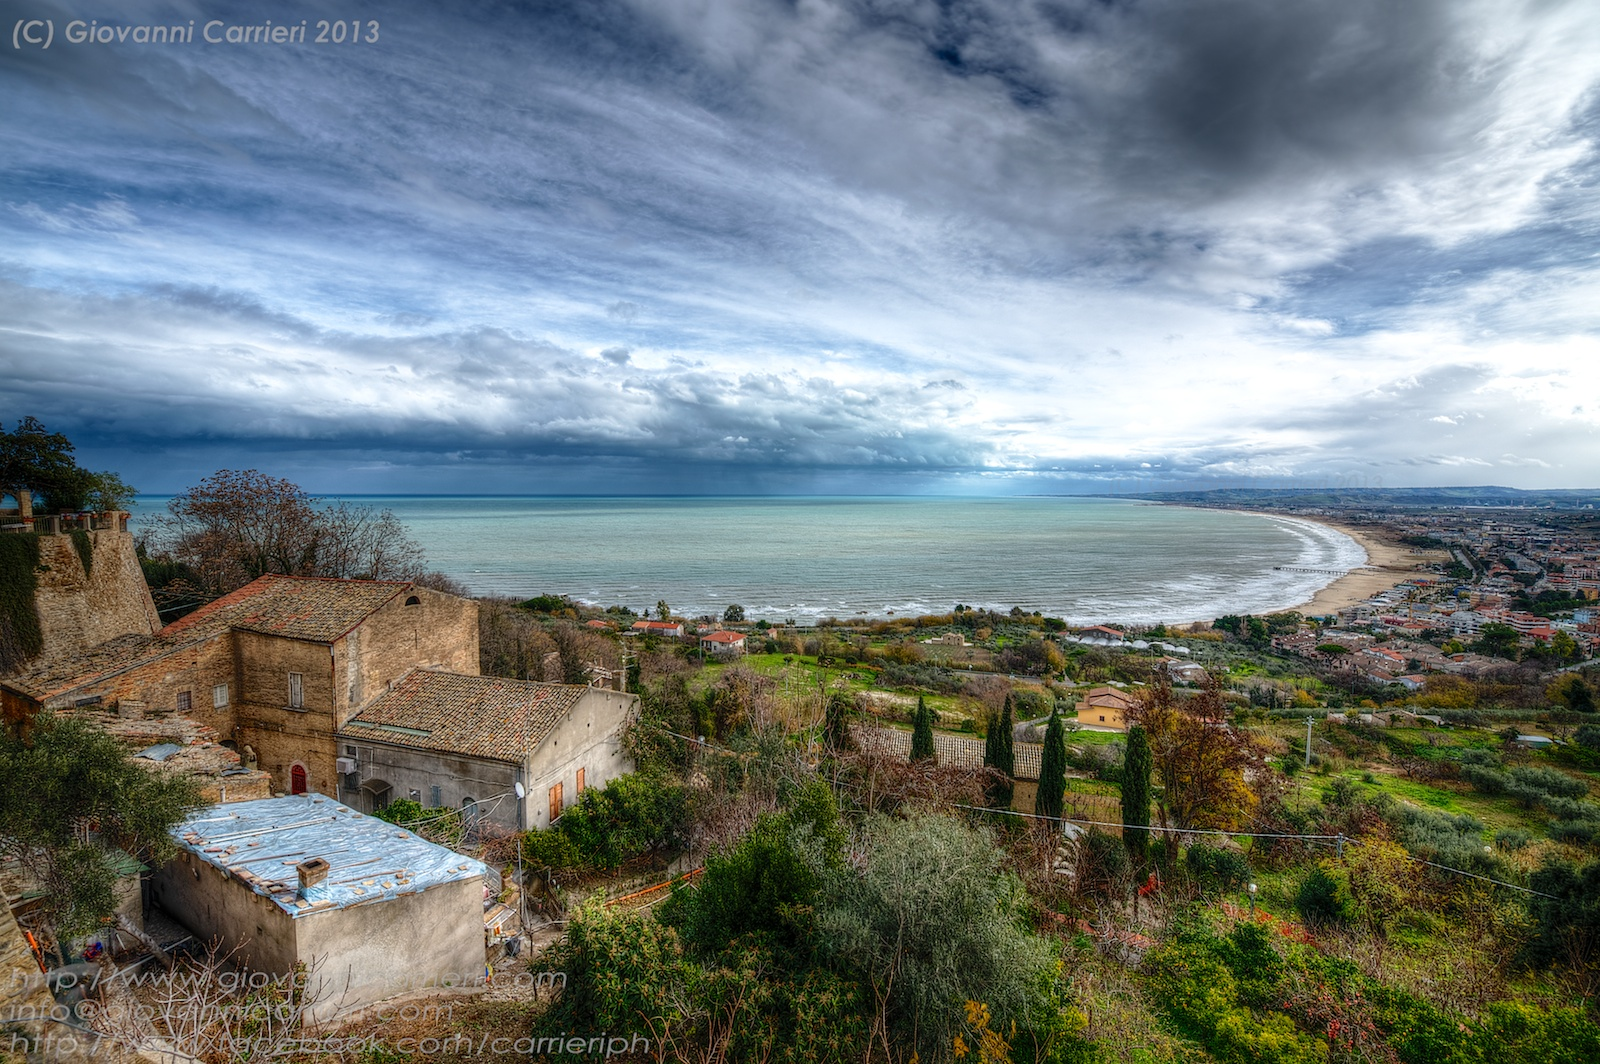 Photographs of Vasto